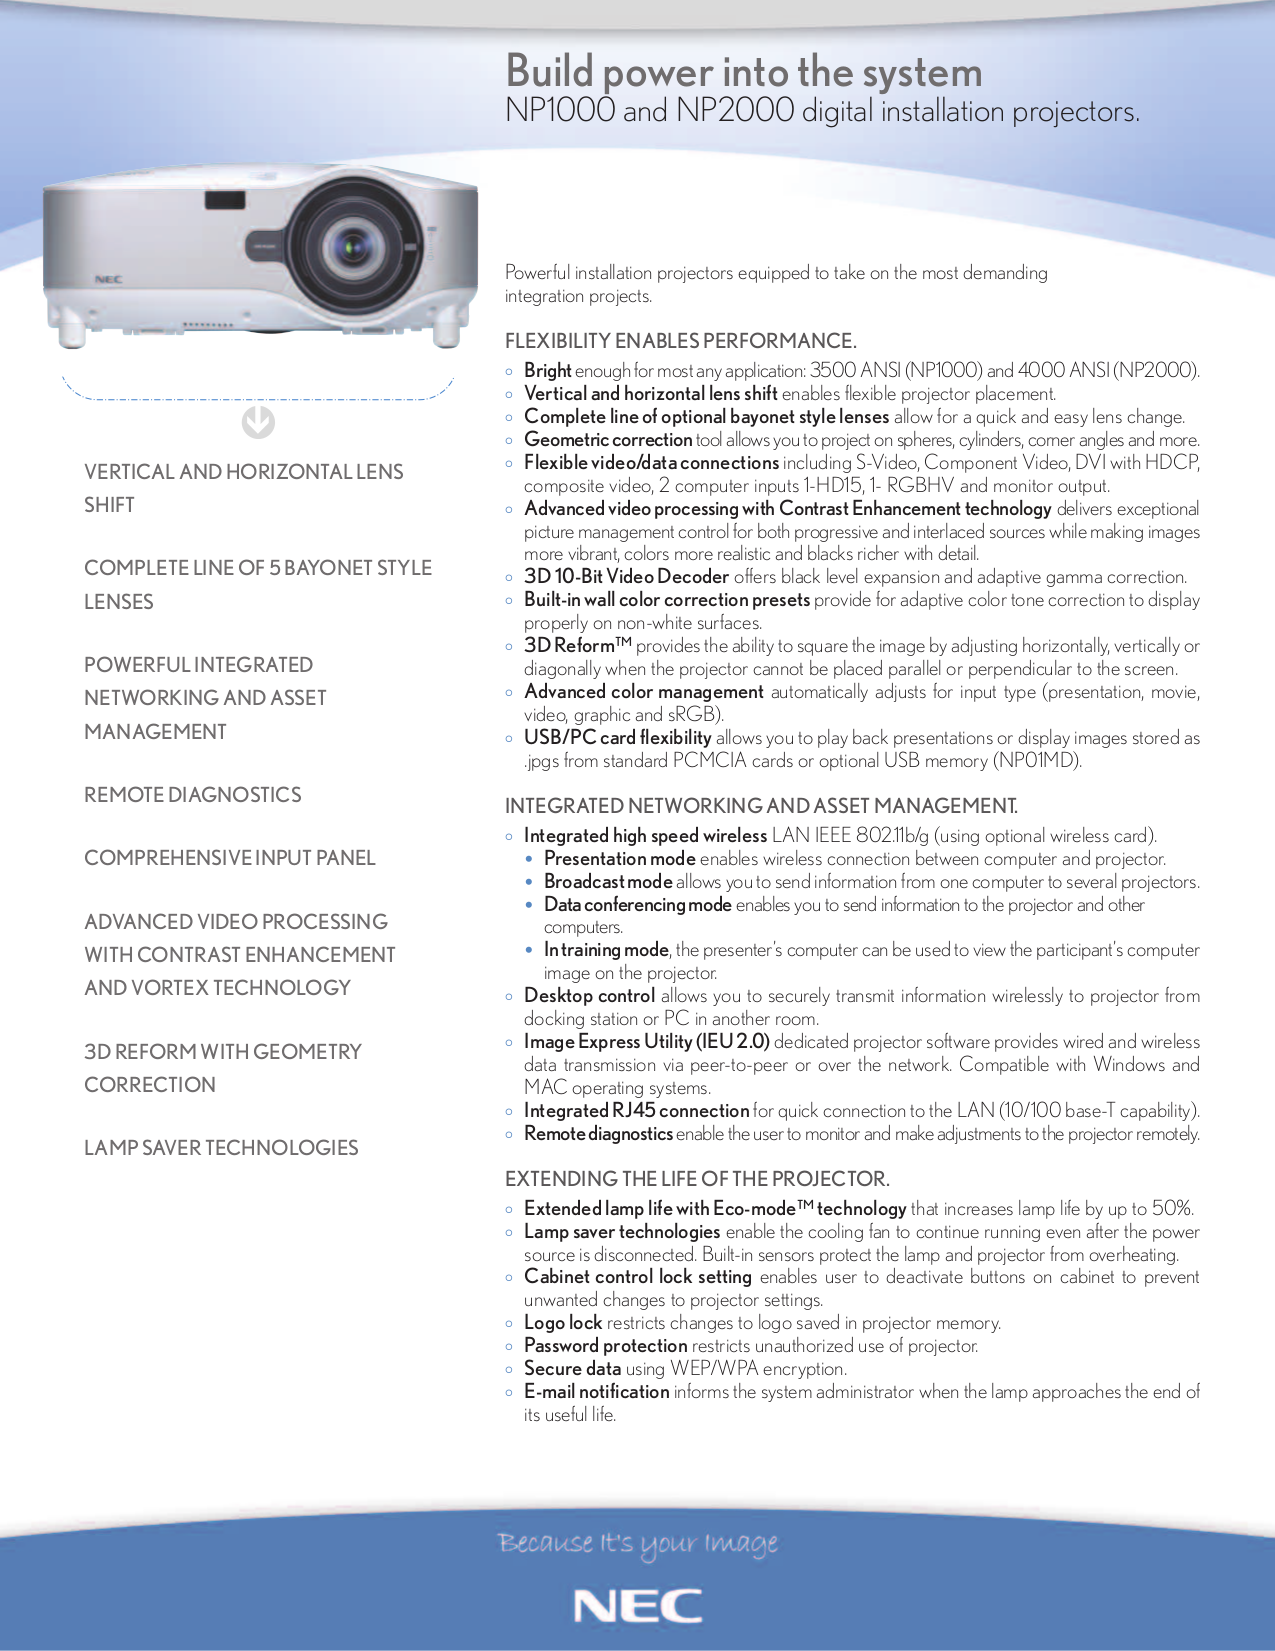 pdf for NEC Projector NP1000 manual